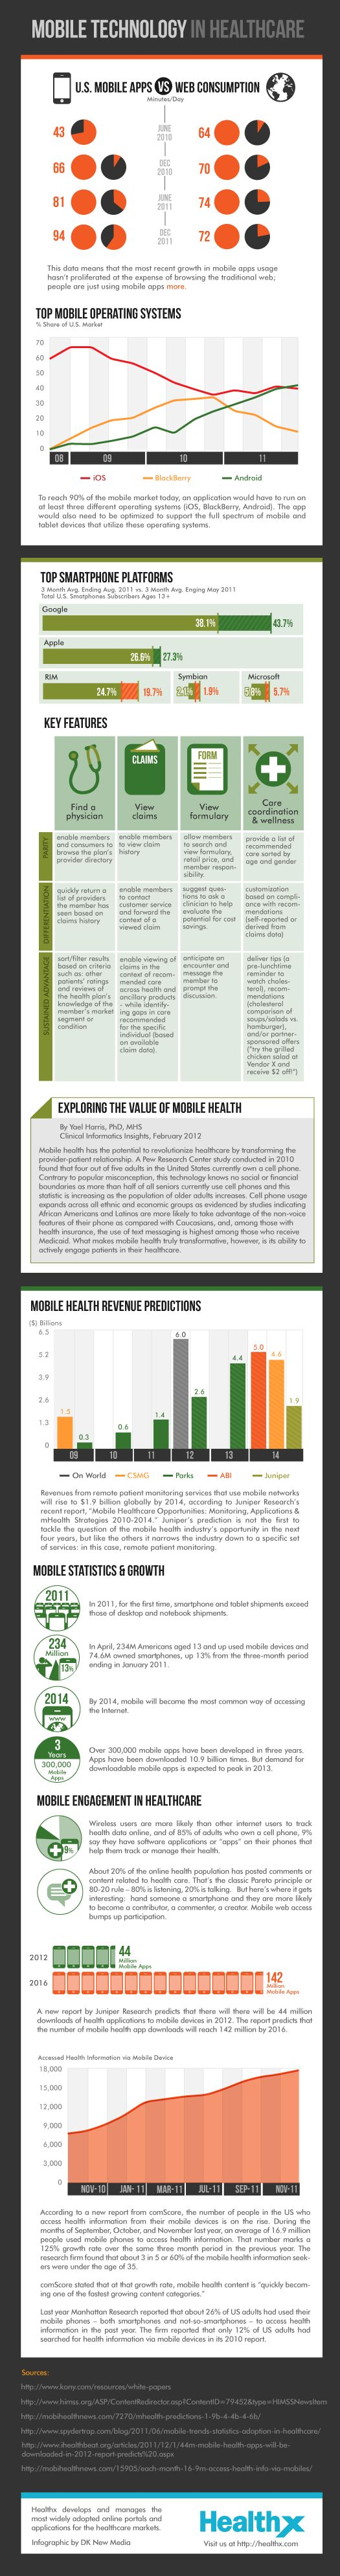 Mobile technology in healthcare: another #infographic but lots of decent data #hcsm #mhealth